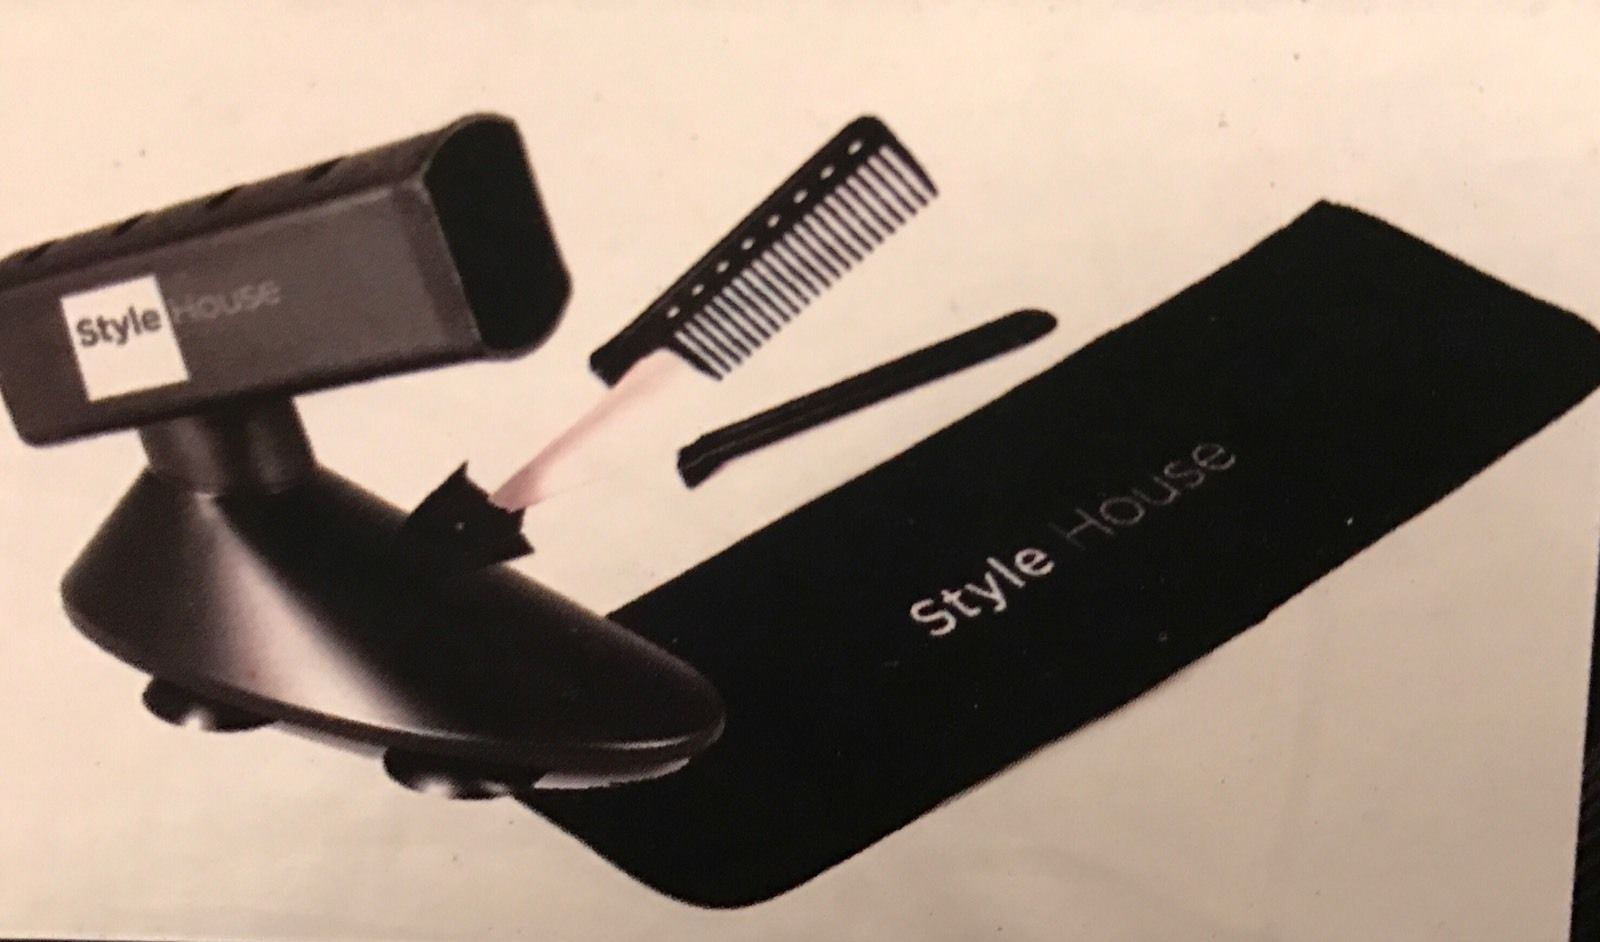 Style House Professional Styling Flat Iron And Accessory